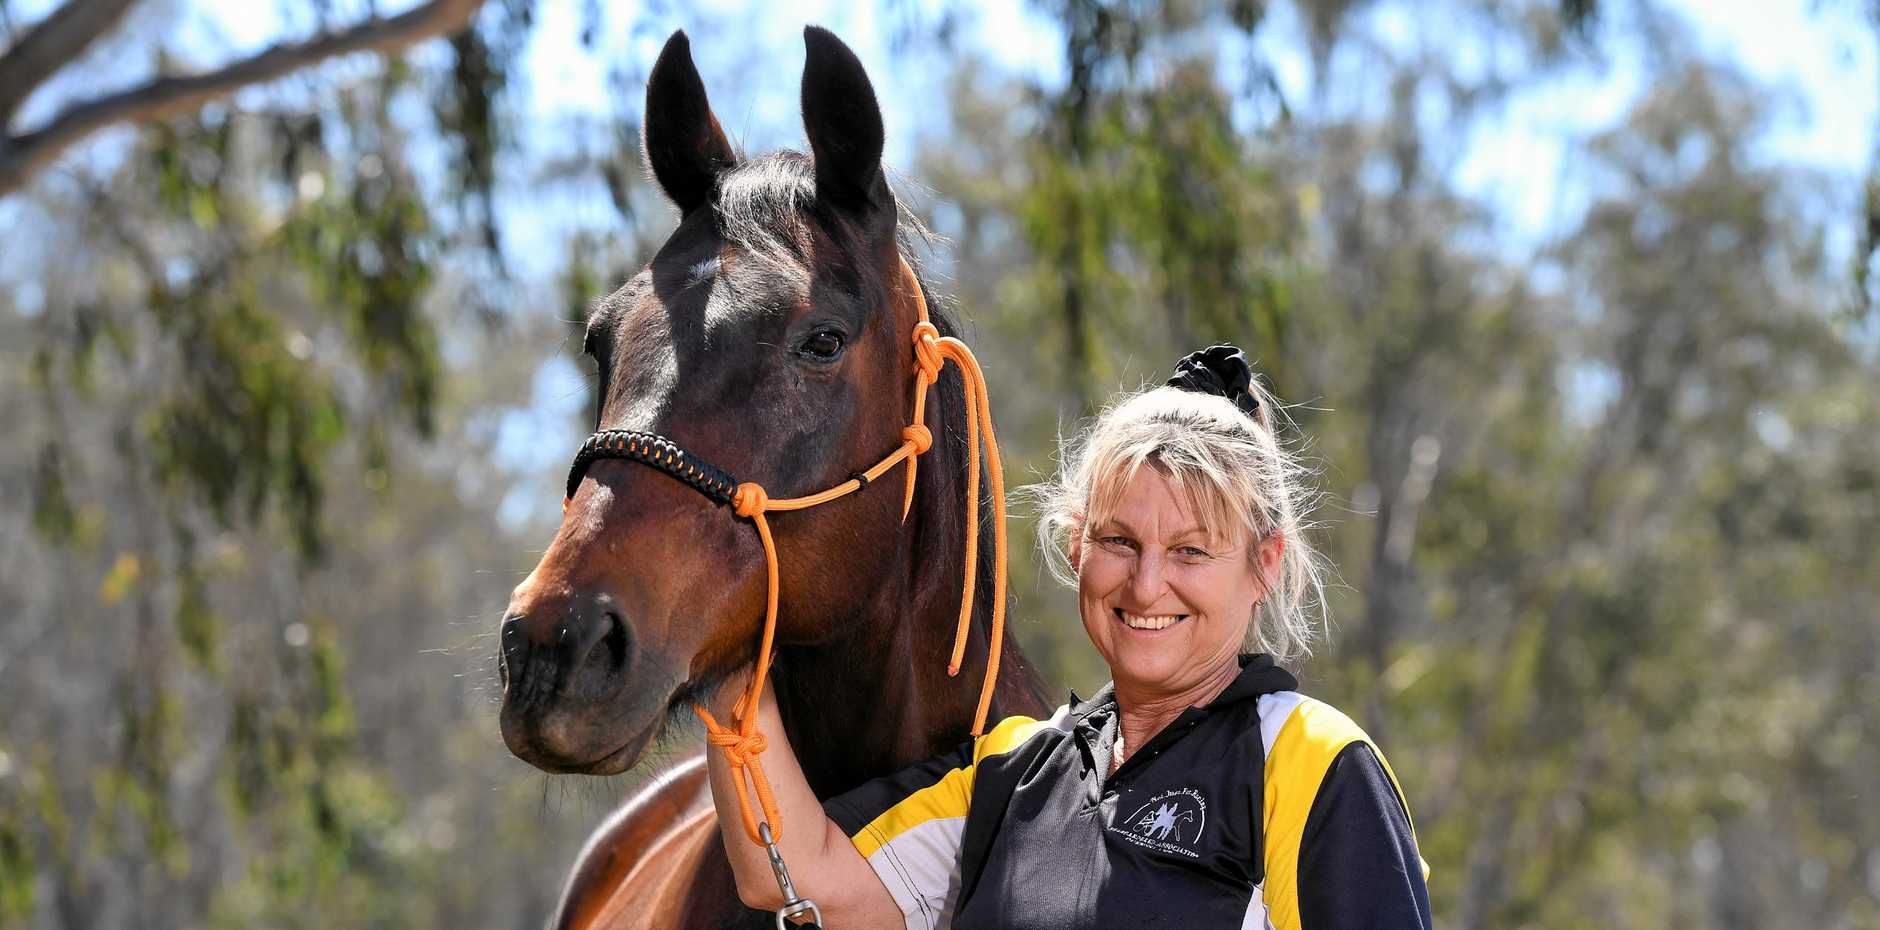 BRIGHTER FUTURE: Melissa Bellfrom Standardbred Association of Queensland with 12-year-old former harness racing Standardbred, Boots.